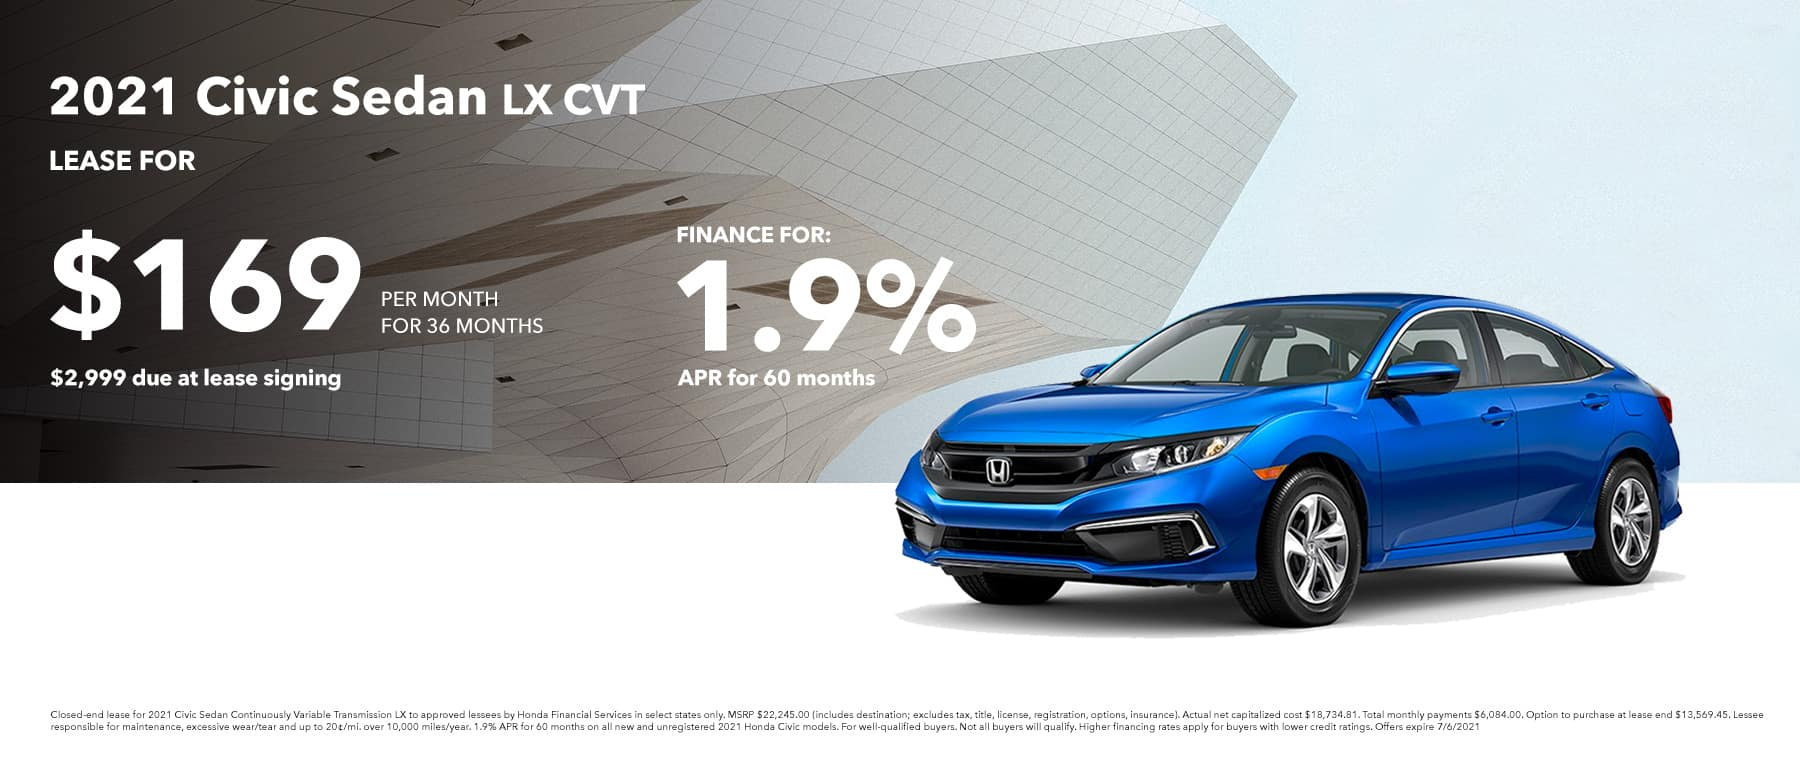 2021 Civic Sedan LX LEASE FOR: $169 PER MONTH FOR 36 MONTHS $2,999 due at lease signing FINANCE FOR: 1.9% APR FOR 60 MONTHS